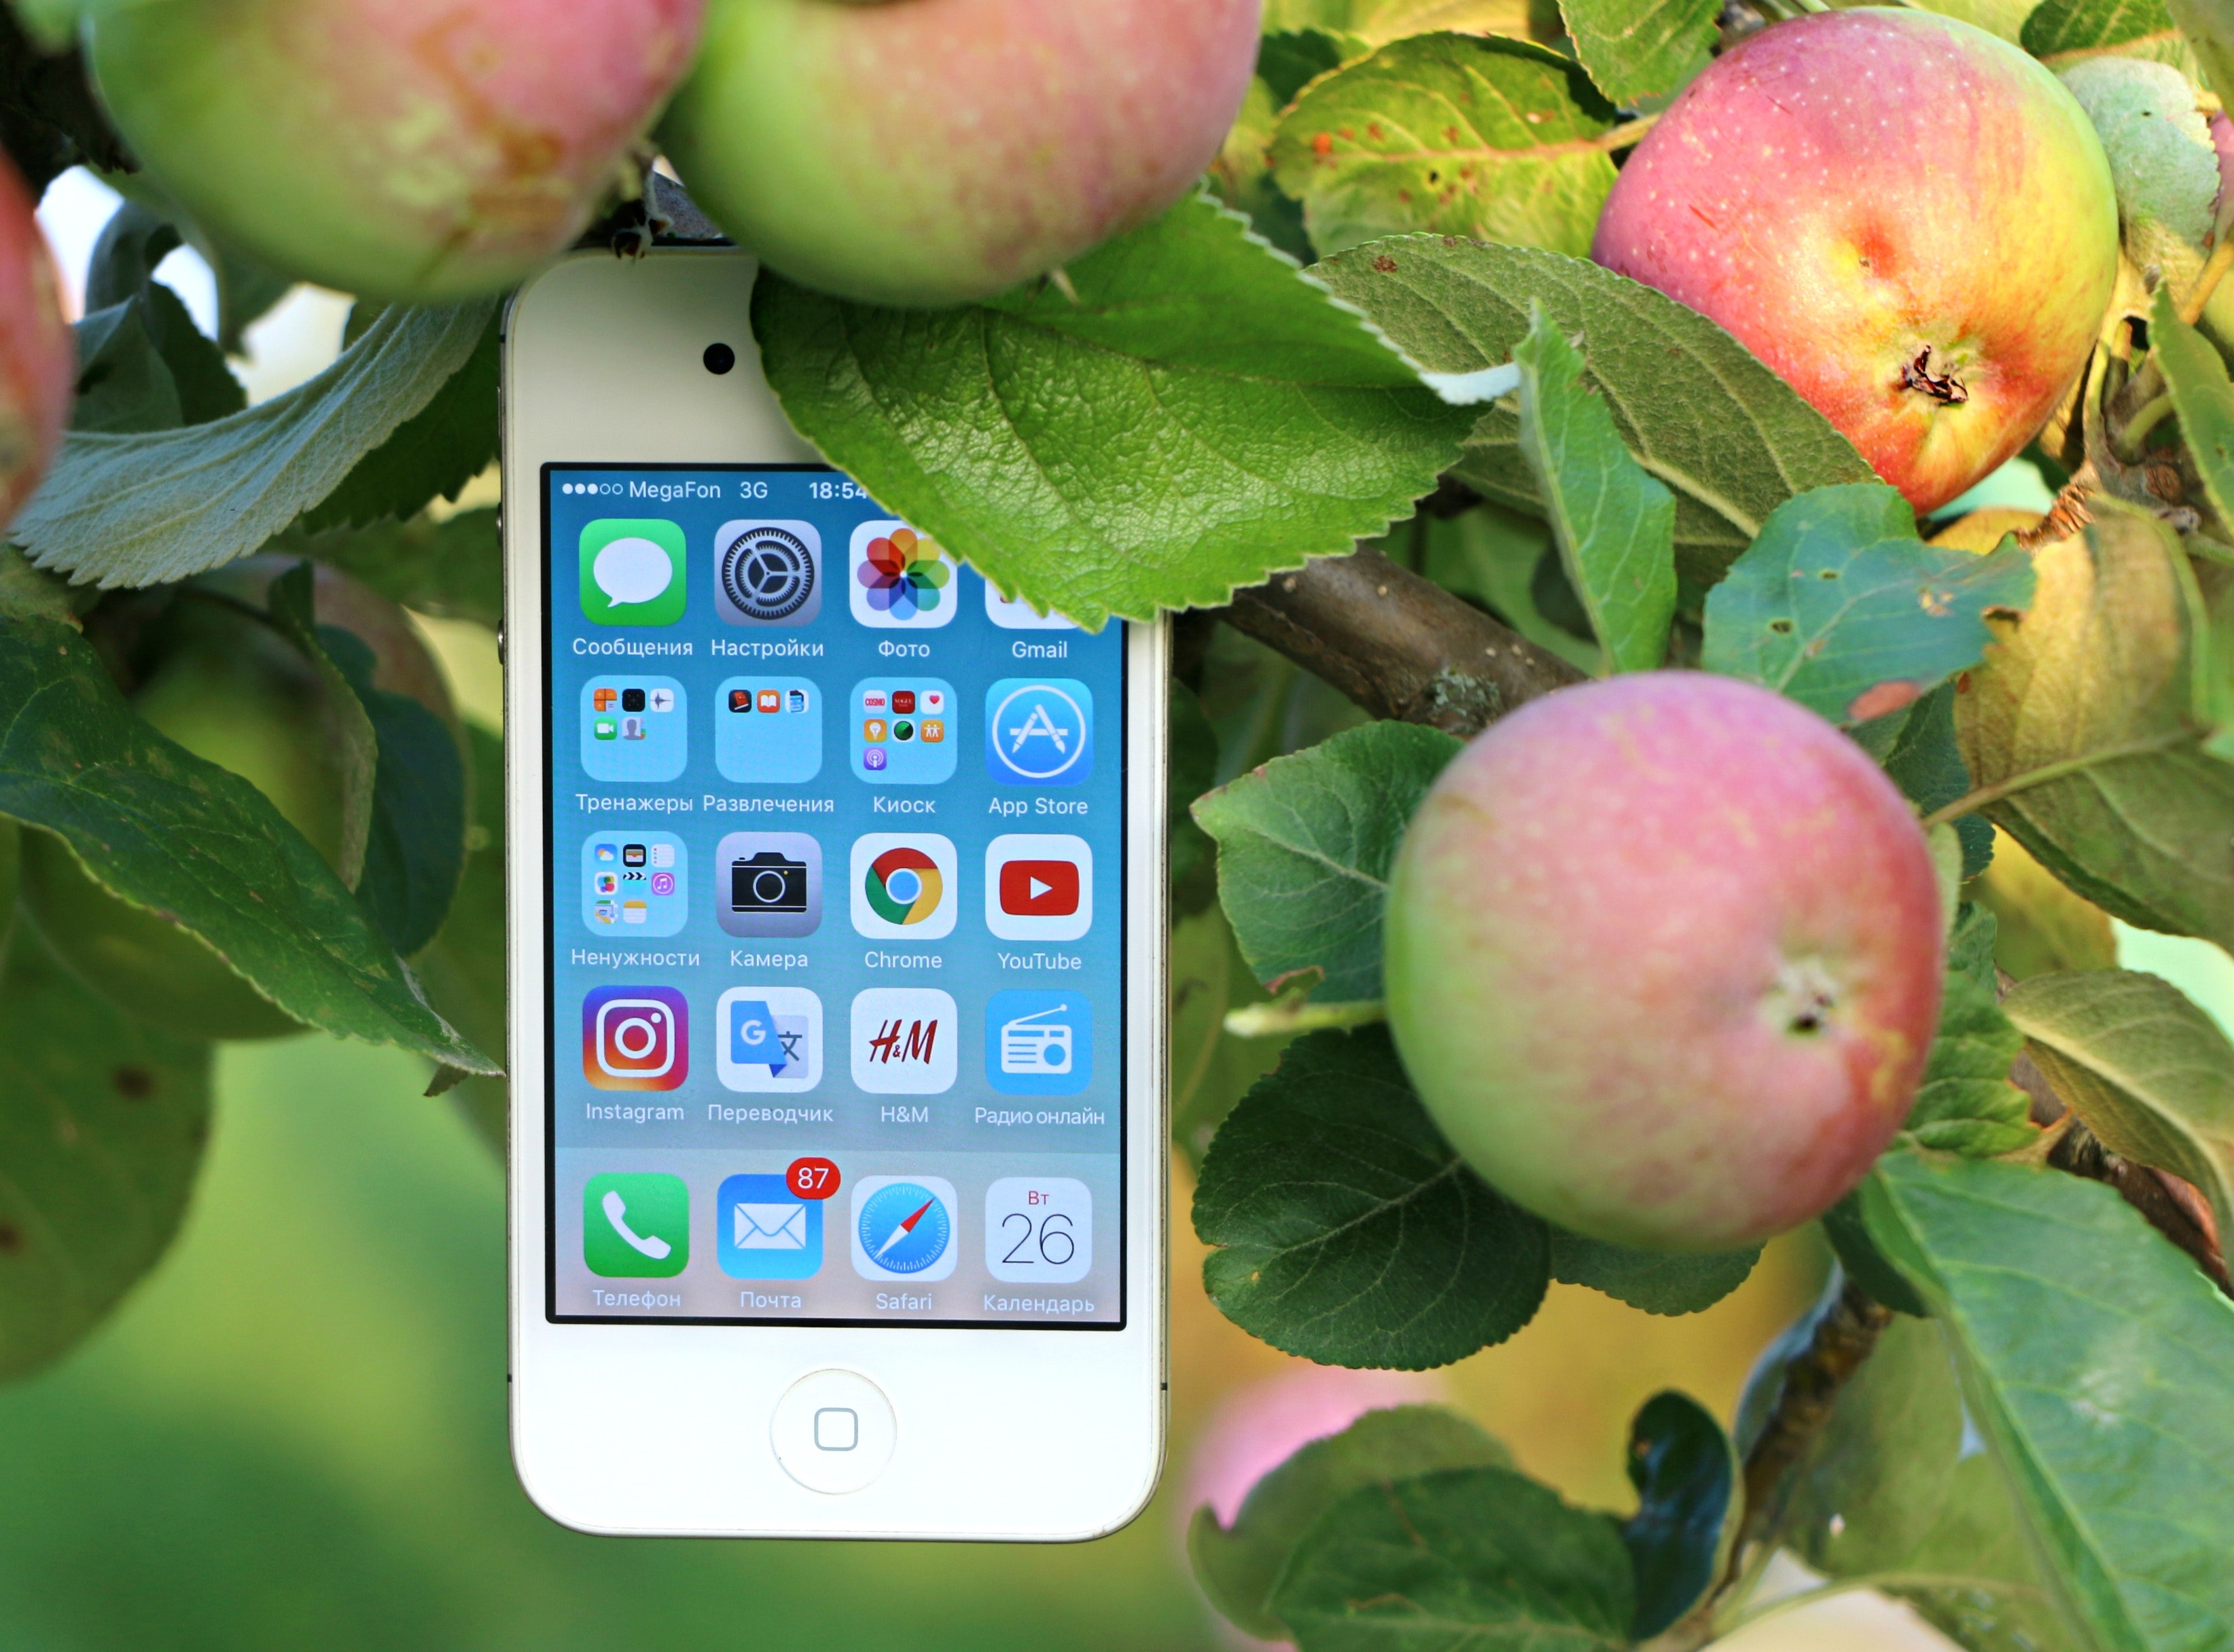 White Iphone 4 Hanging on Branch, Agriculture, Fruit, Smartphone, Screen, HQ Photo